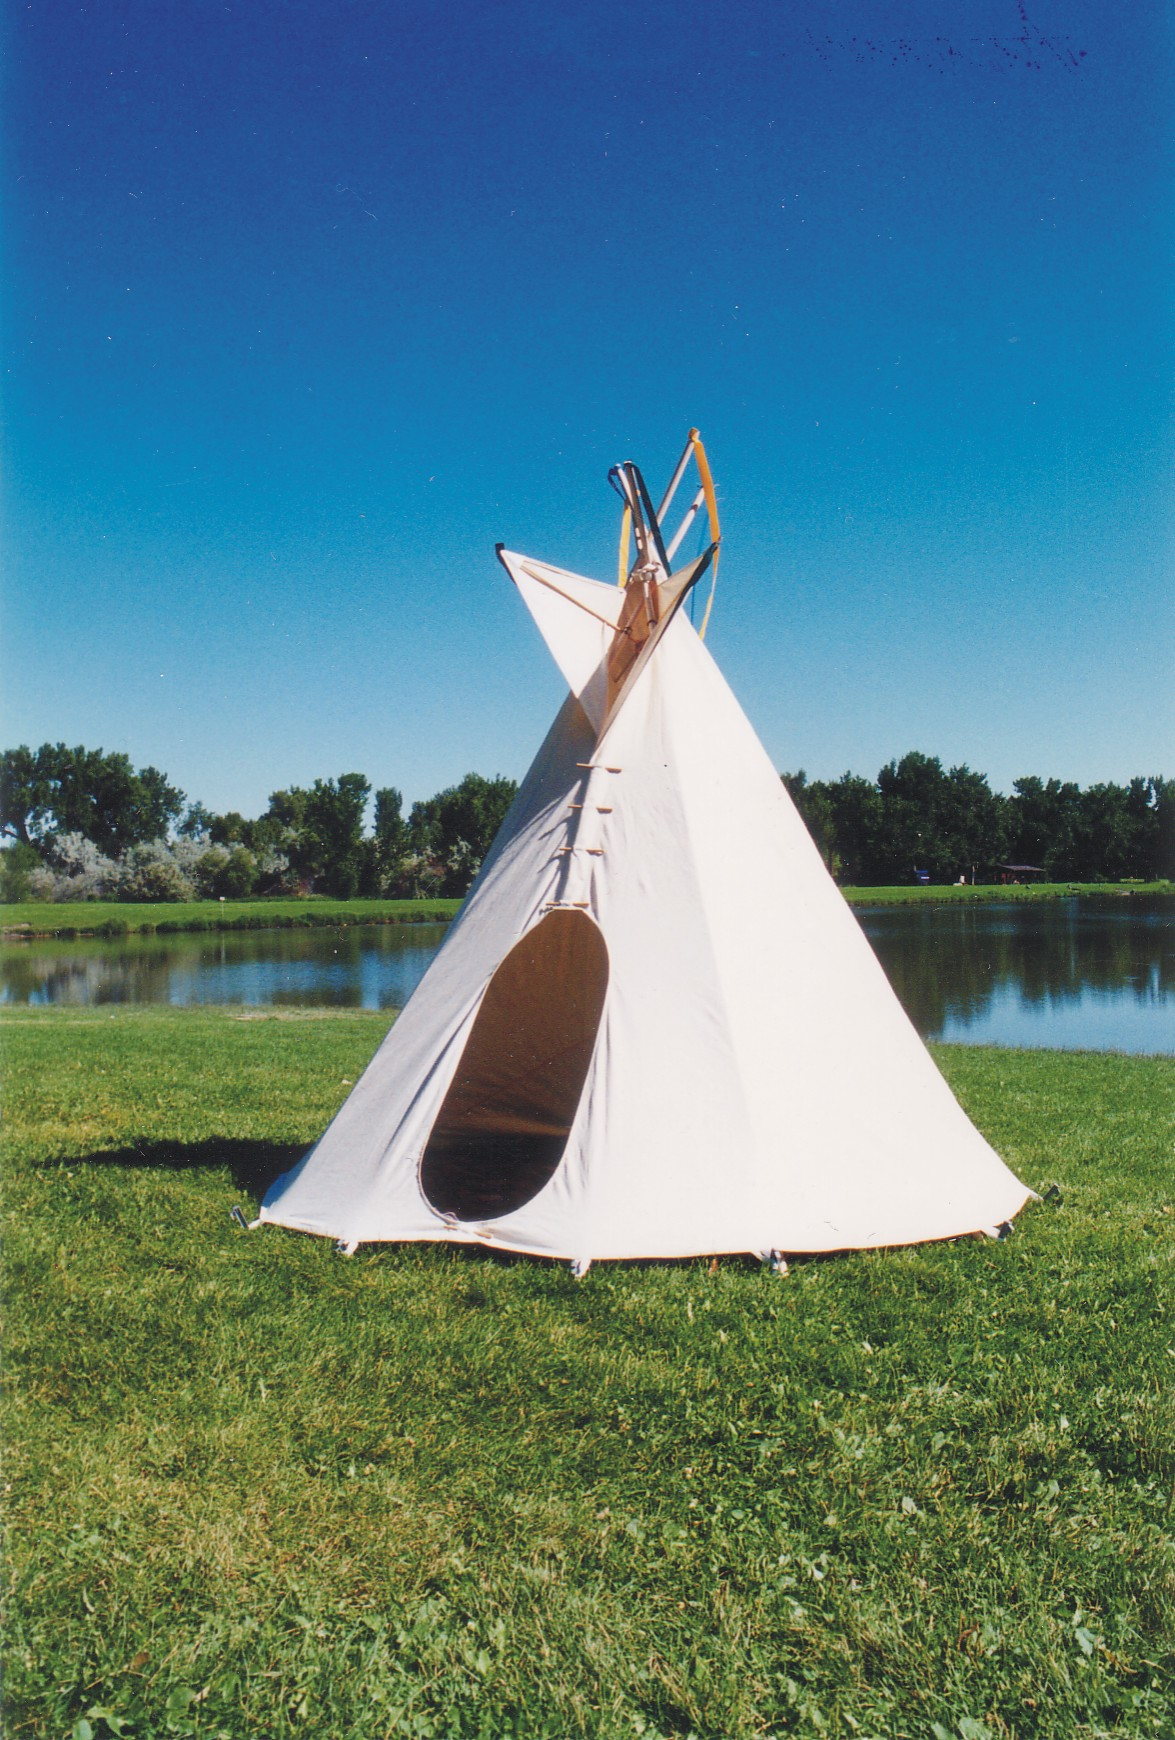 Childrenu0027s Backyard Tipi & Childrenu0027s Backyard Tipi - Reliable Tent and Tipi